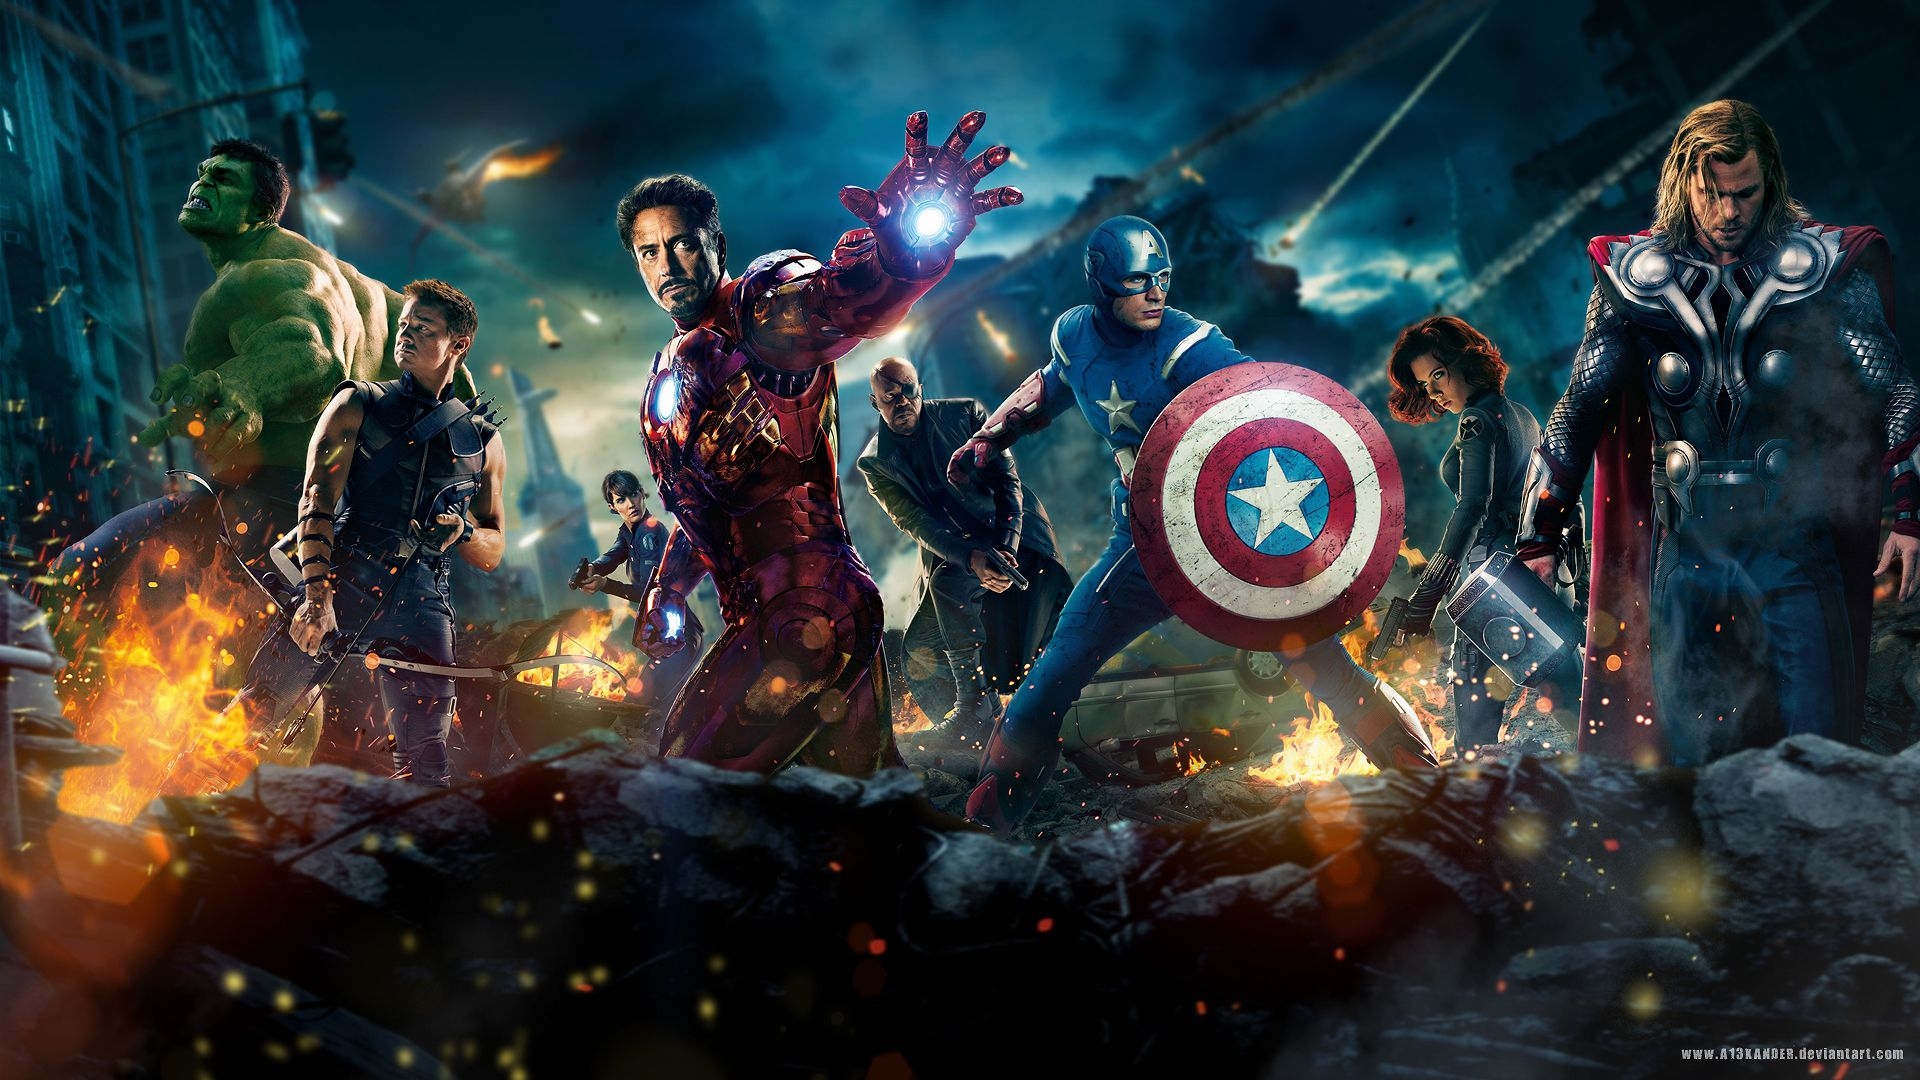 Cool Avengers Wallpapers - Top Free Cool Avengers Backgrounds